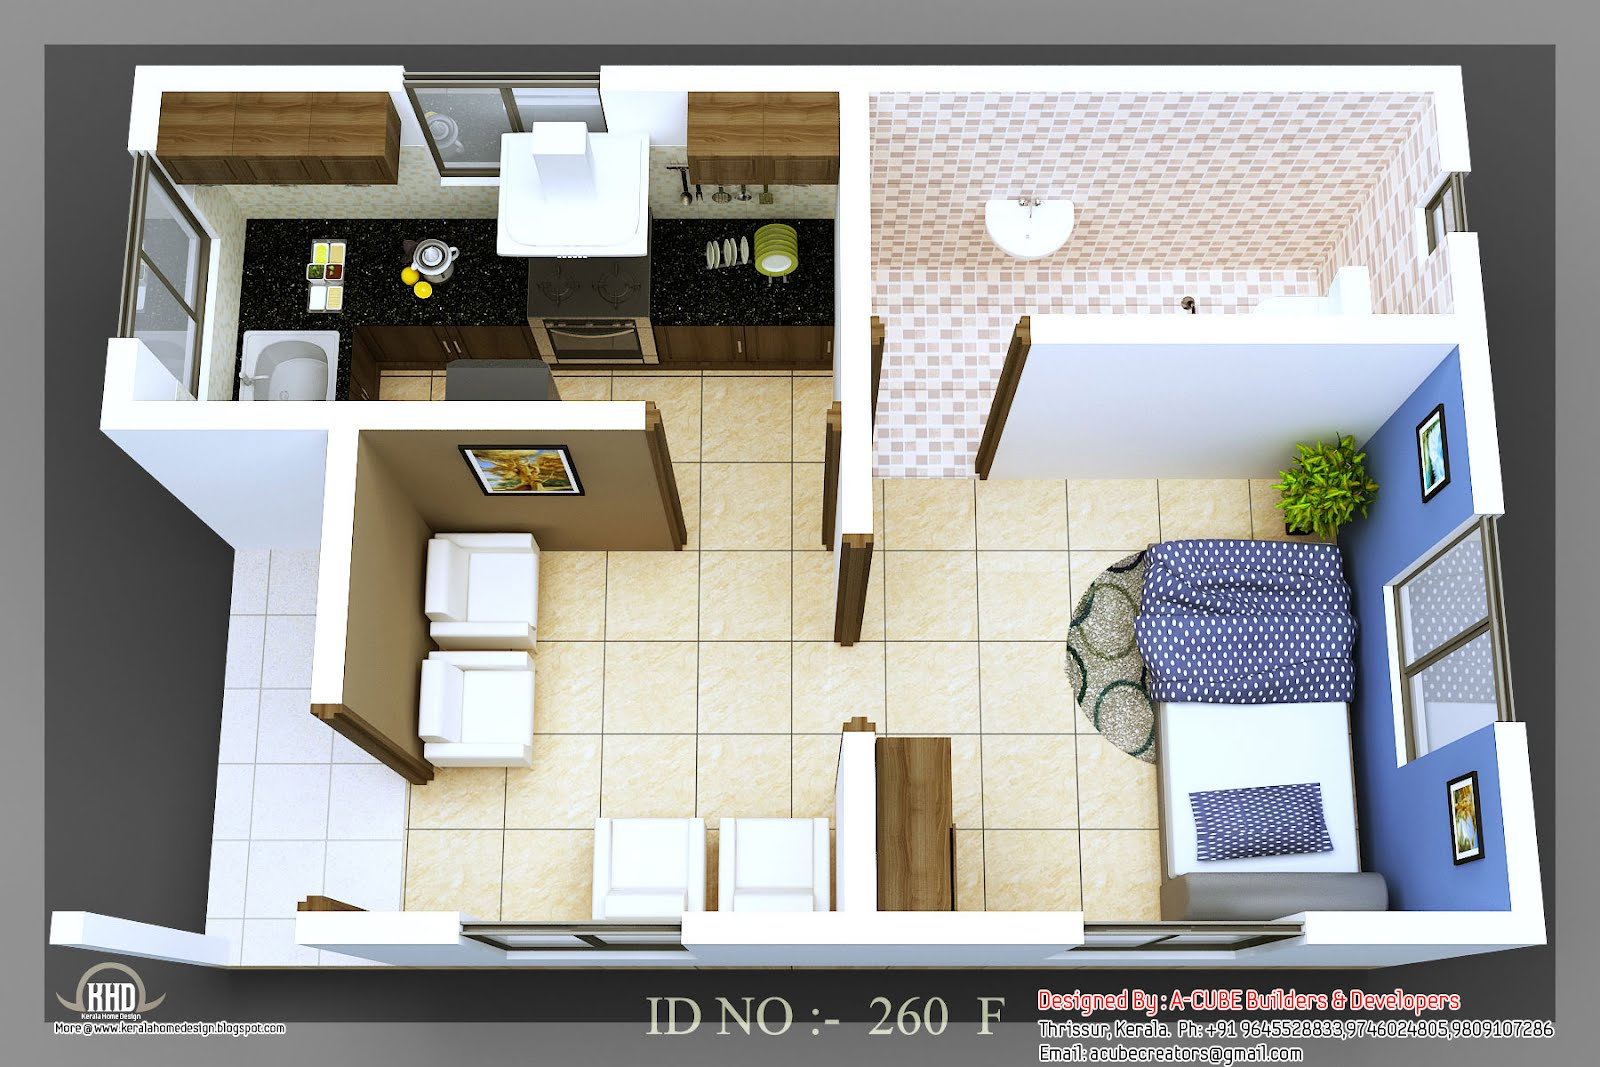 3d isometric views of small house plans kerala home for Interior design ideas for small house